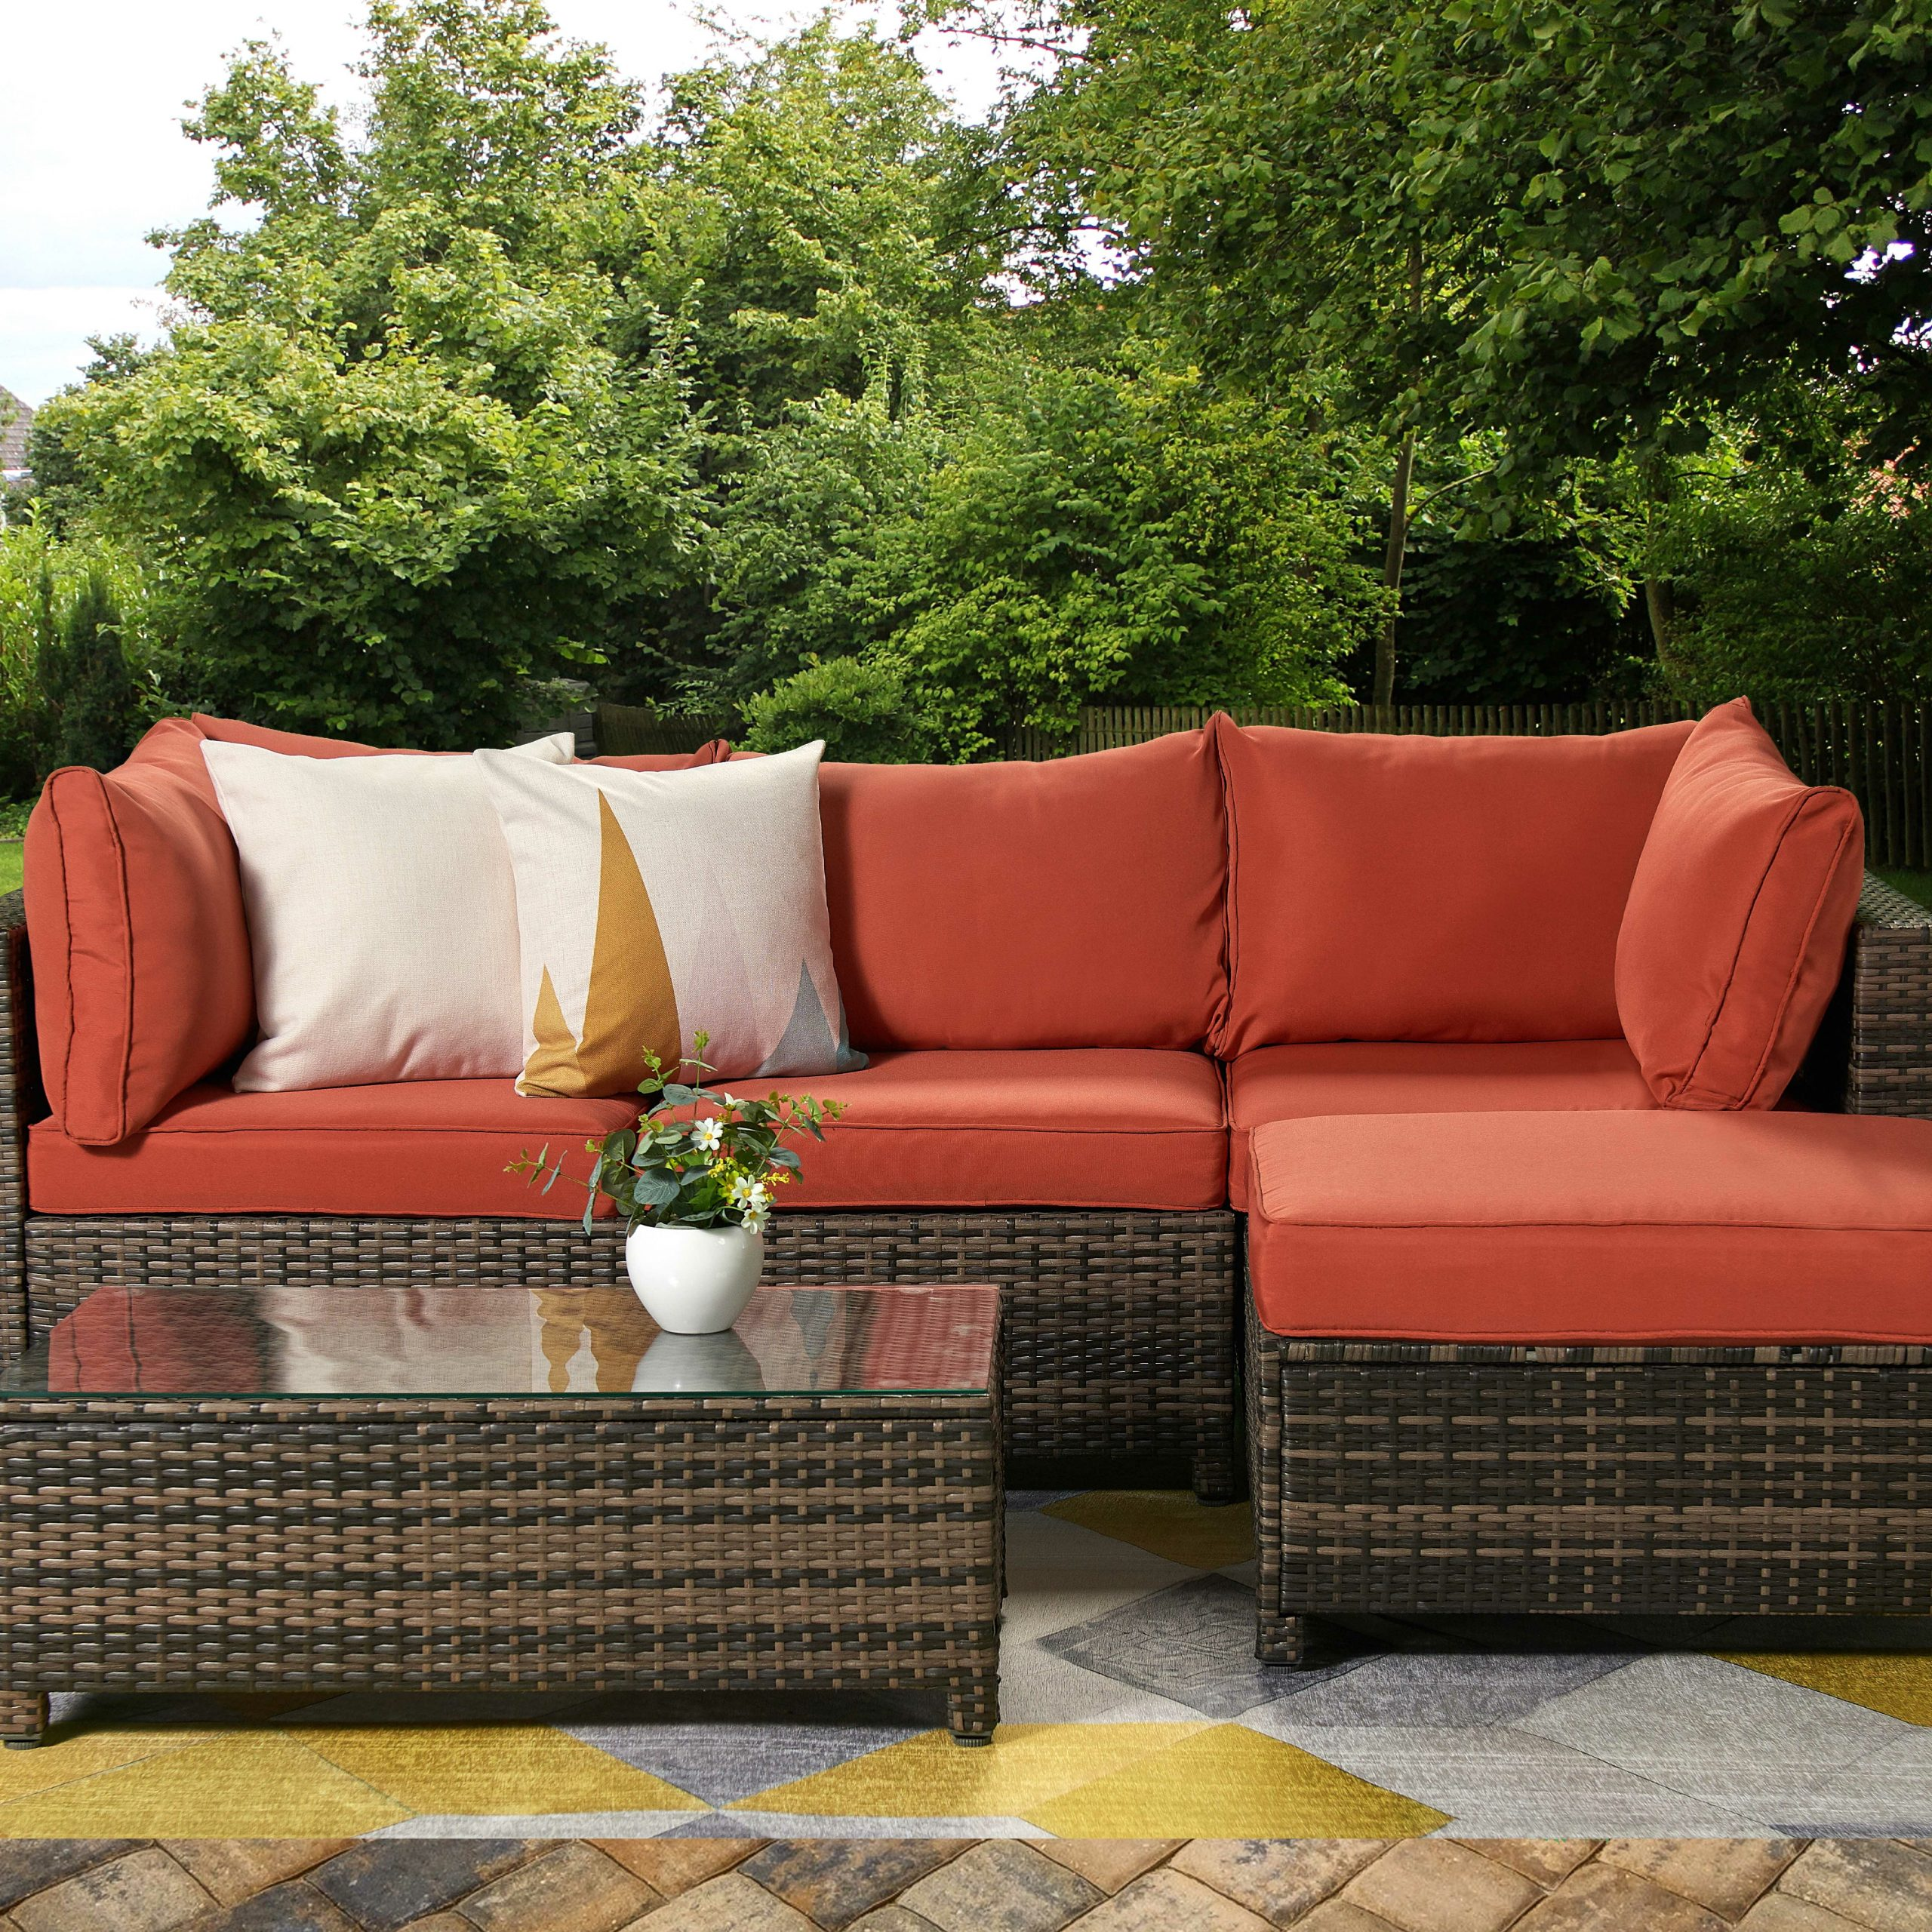 Wayfair Pertaining To Famous Boyce Outdoor Patio Sectionals With Cushions (View 4 of 25)